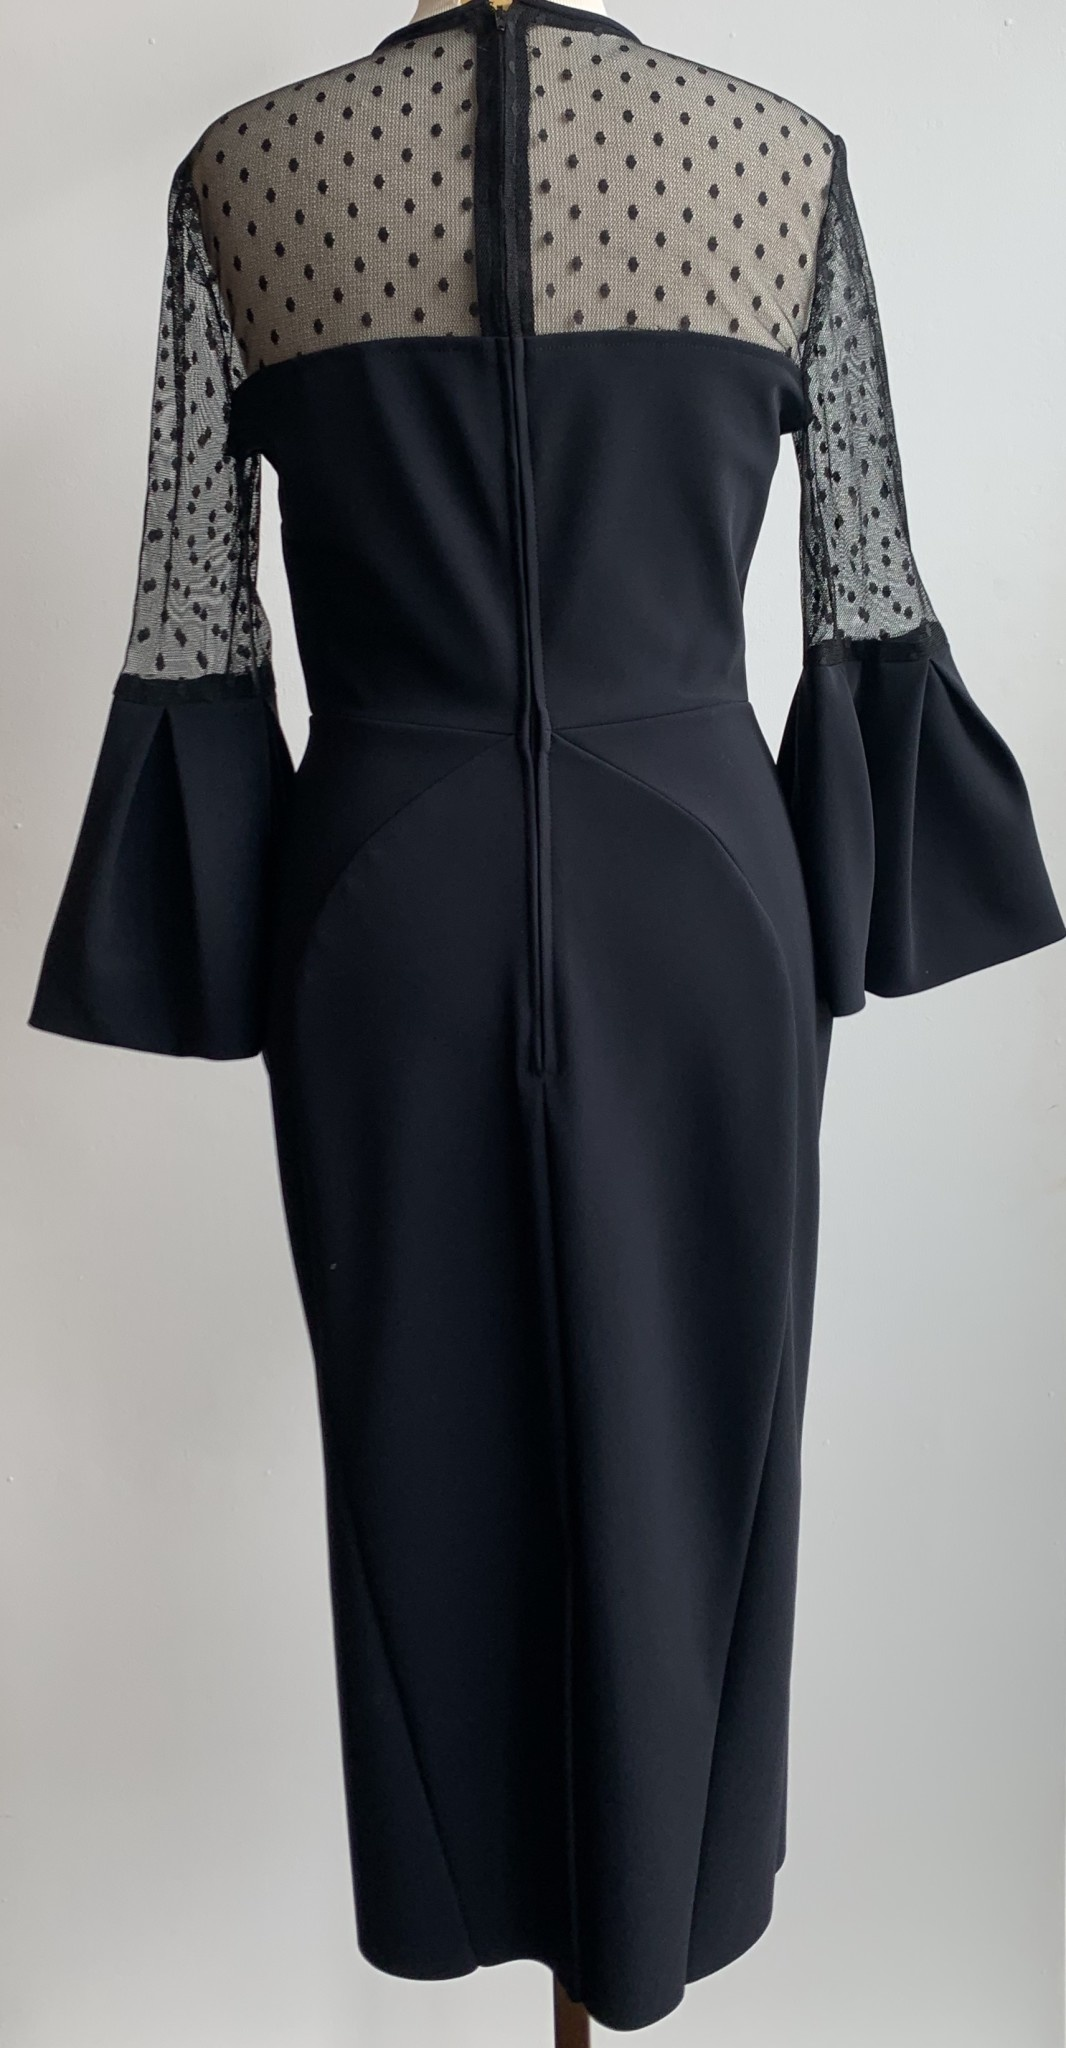 Greta Constantine Peek-A-Boo Fitted W/ Bell Sleeves